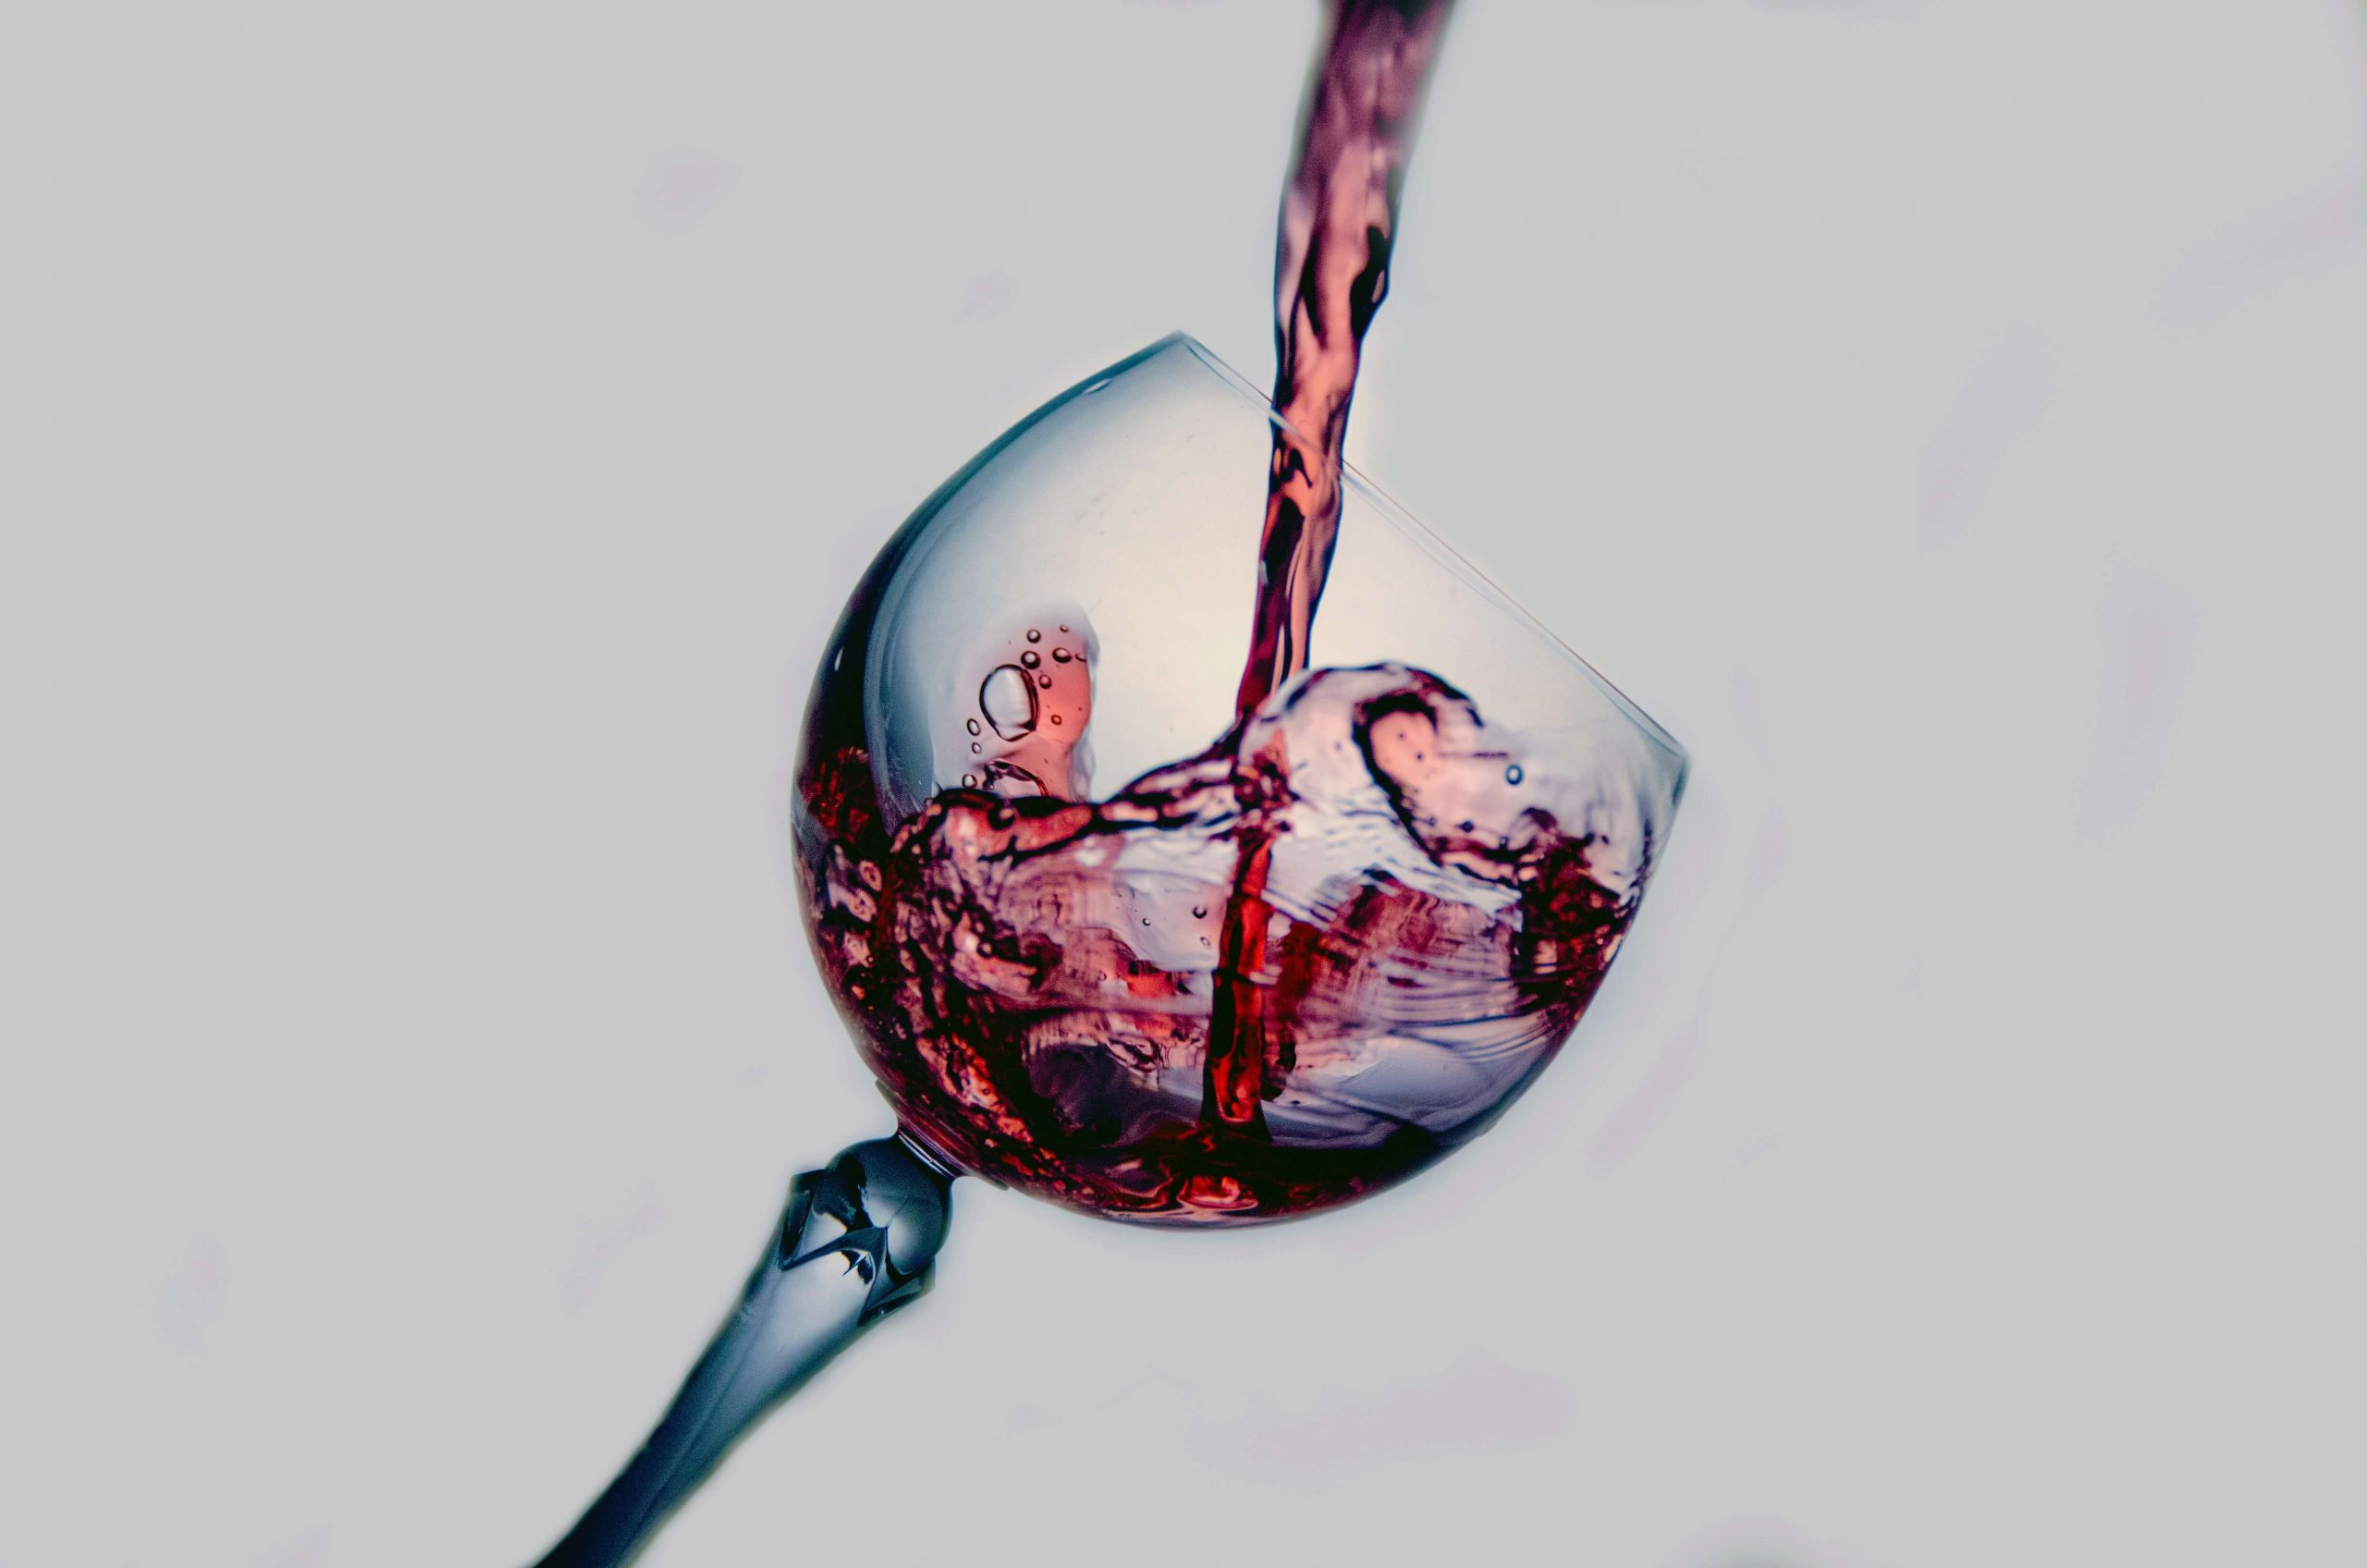 Tannins in wine vs acidity: Use these easy tips to learn how to taste the difference